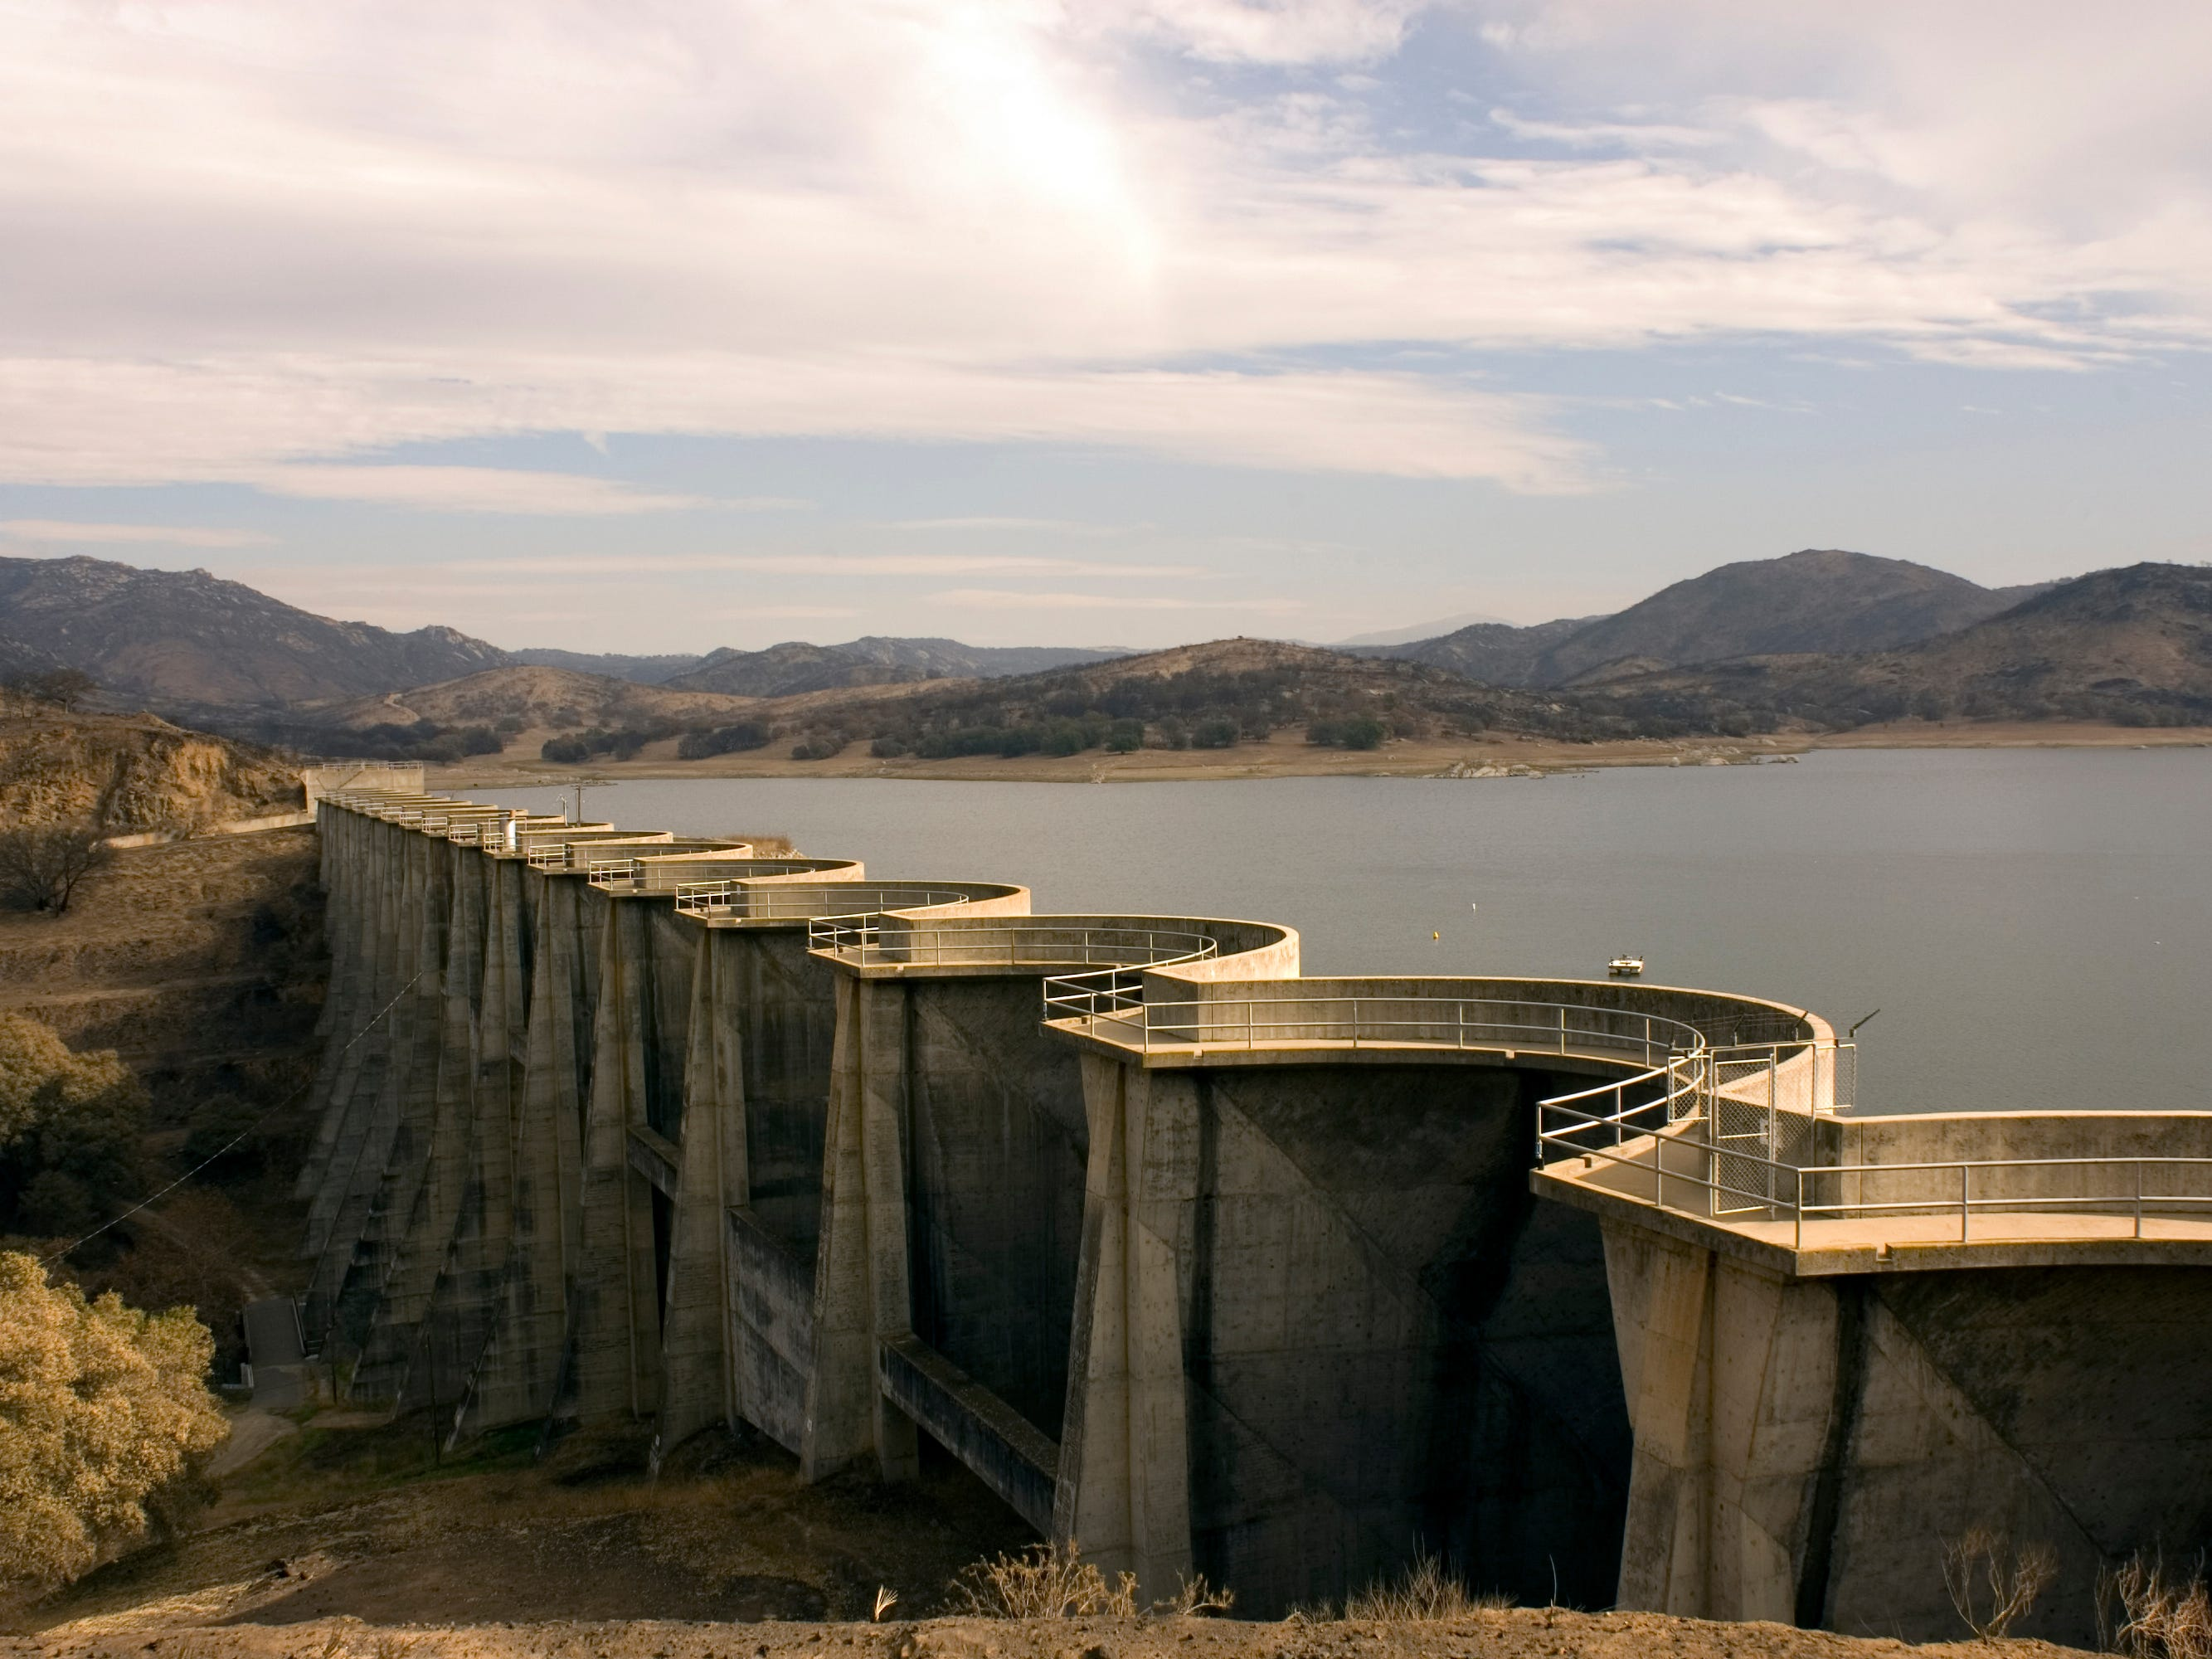 Sutherland Dam in California.